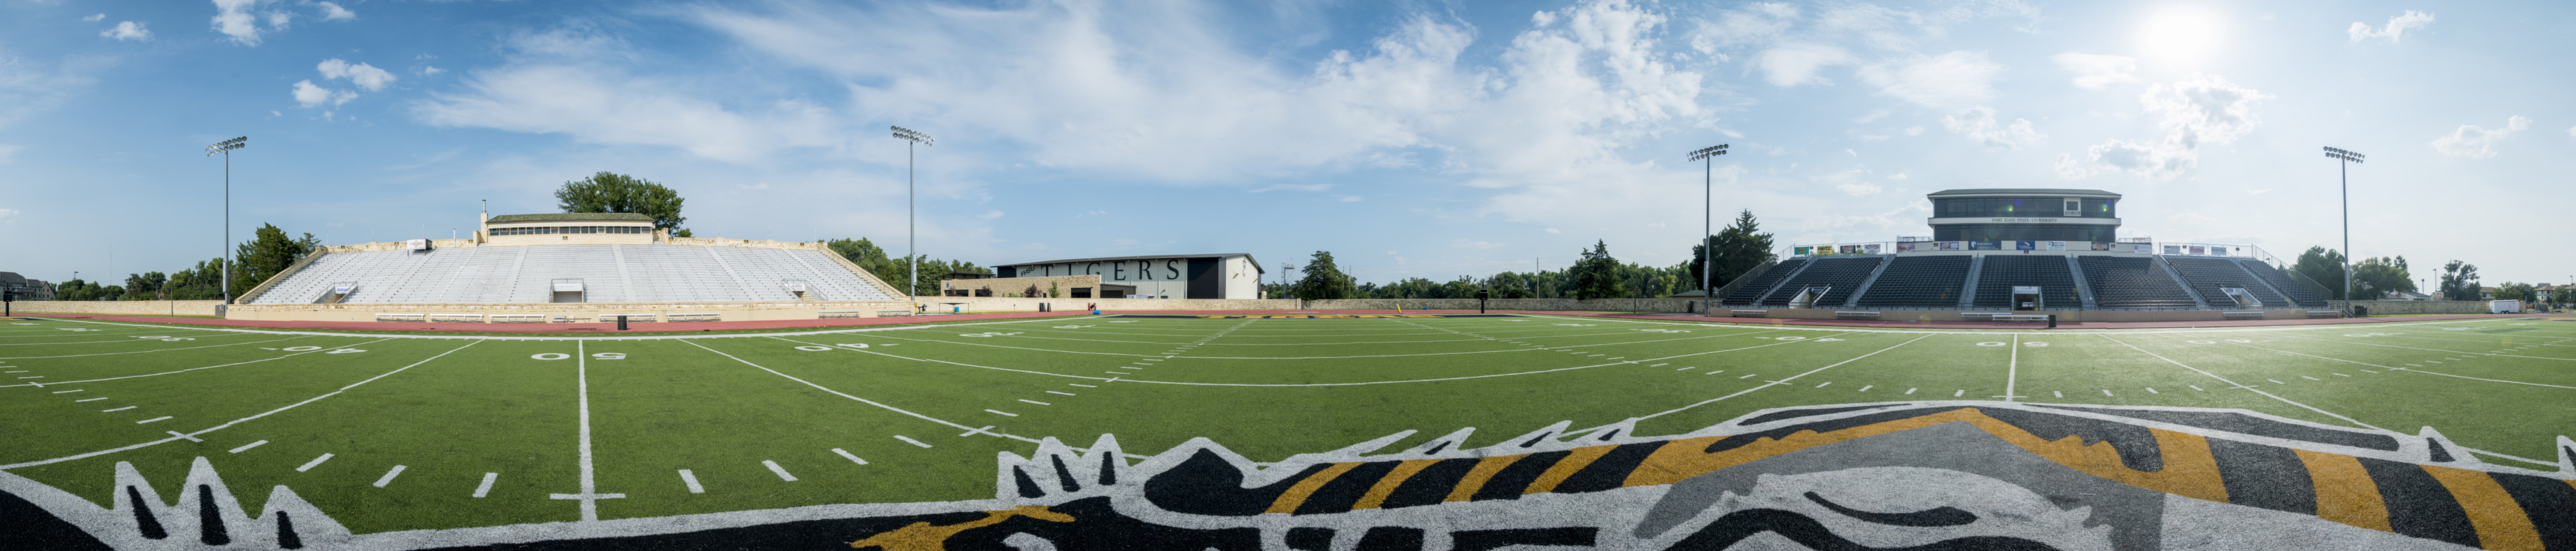 Panorama of Field